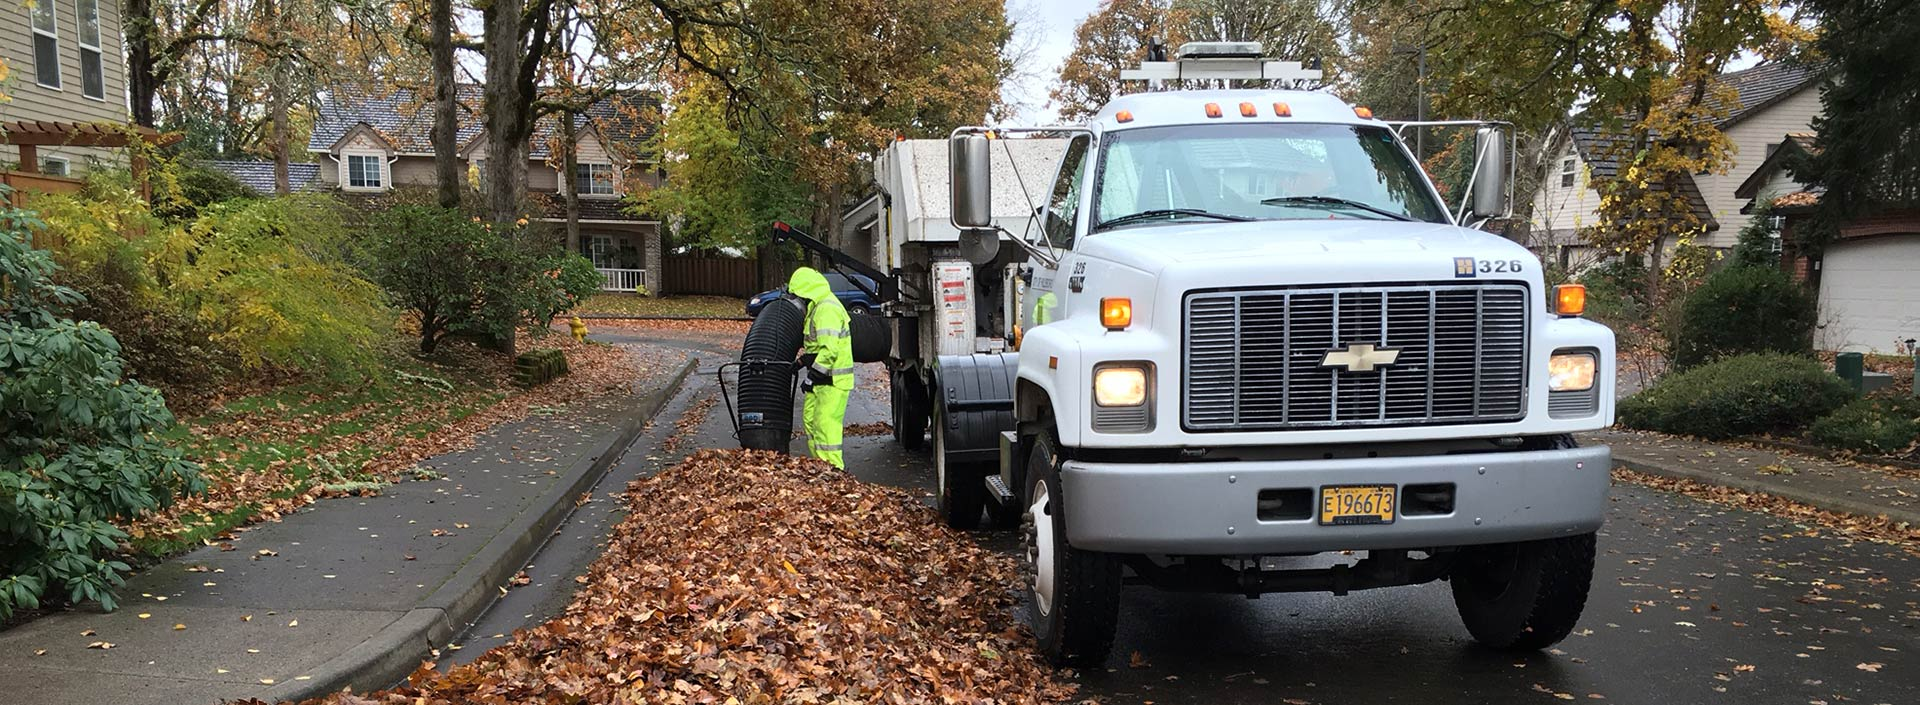 A public works crew member vacuums leaves from a neighborhood street with a large worktruck